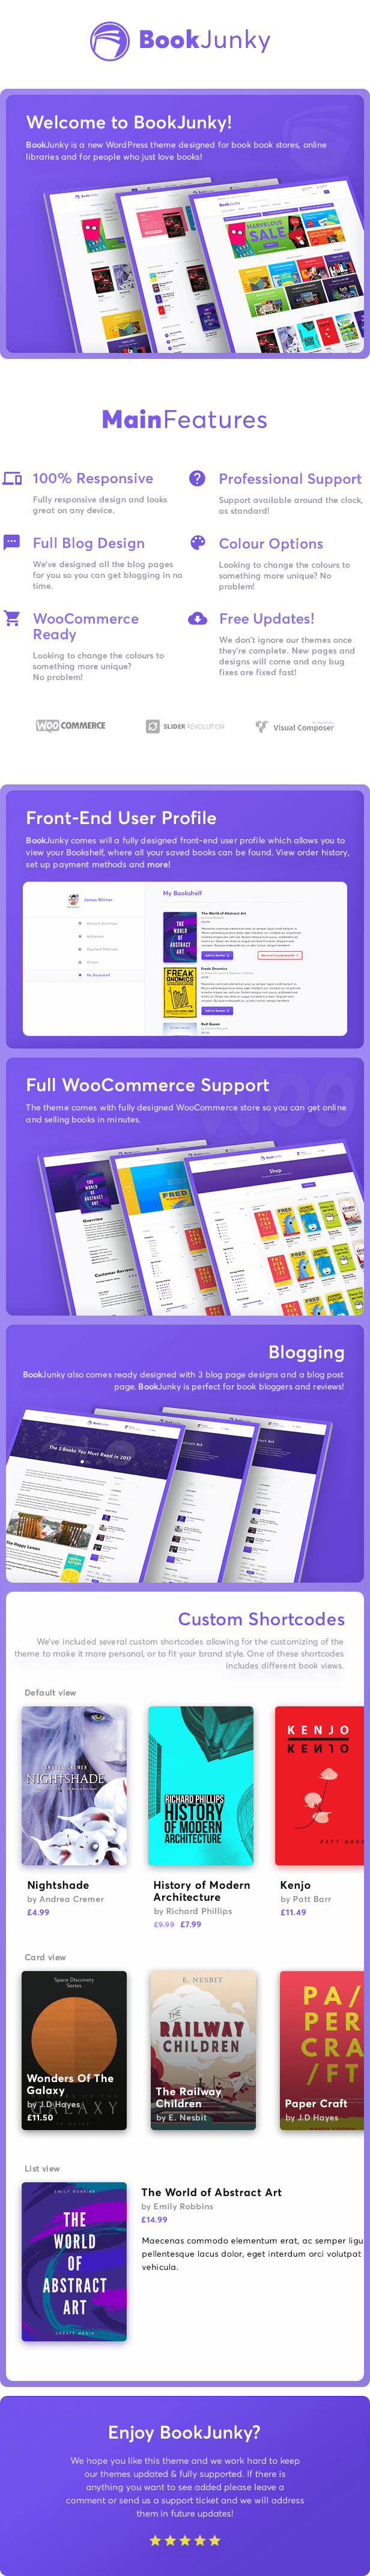 BookJunky - WooCommerce Book Store for WordPress bookjunky - woocommerce book store for wordpress (woocommerce) BookJunky – WooCommerce Book Store for WordPress (WooCommerce) mainpreview